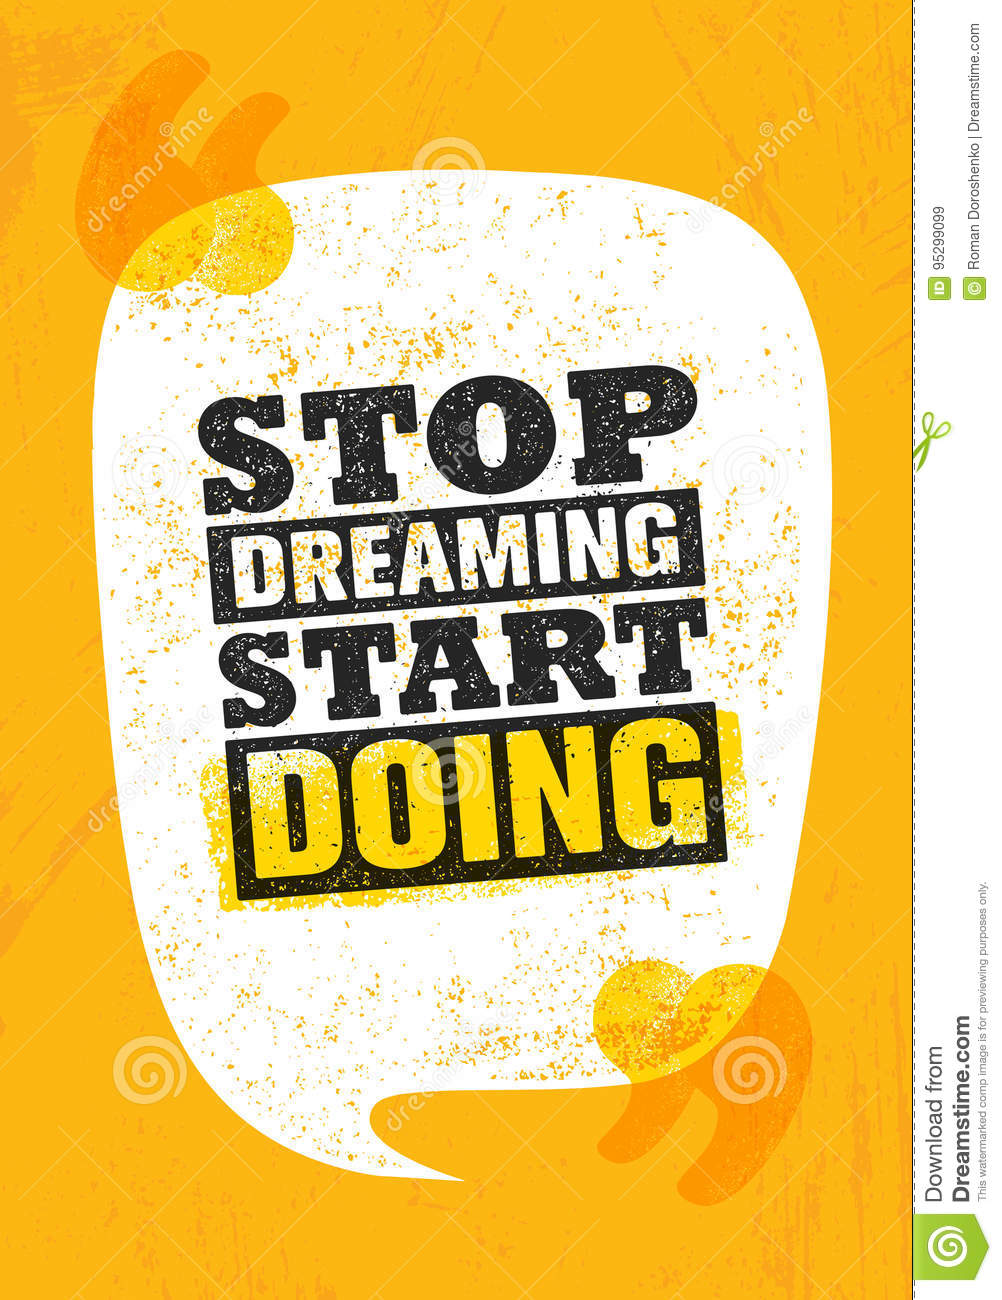 stop dreaming start doing inspiring creative motivation quote